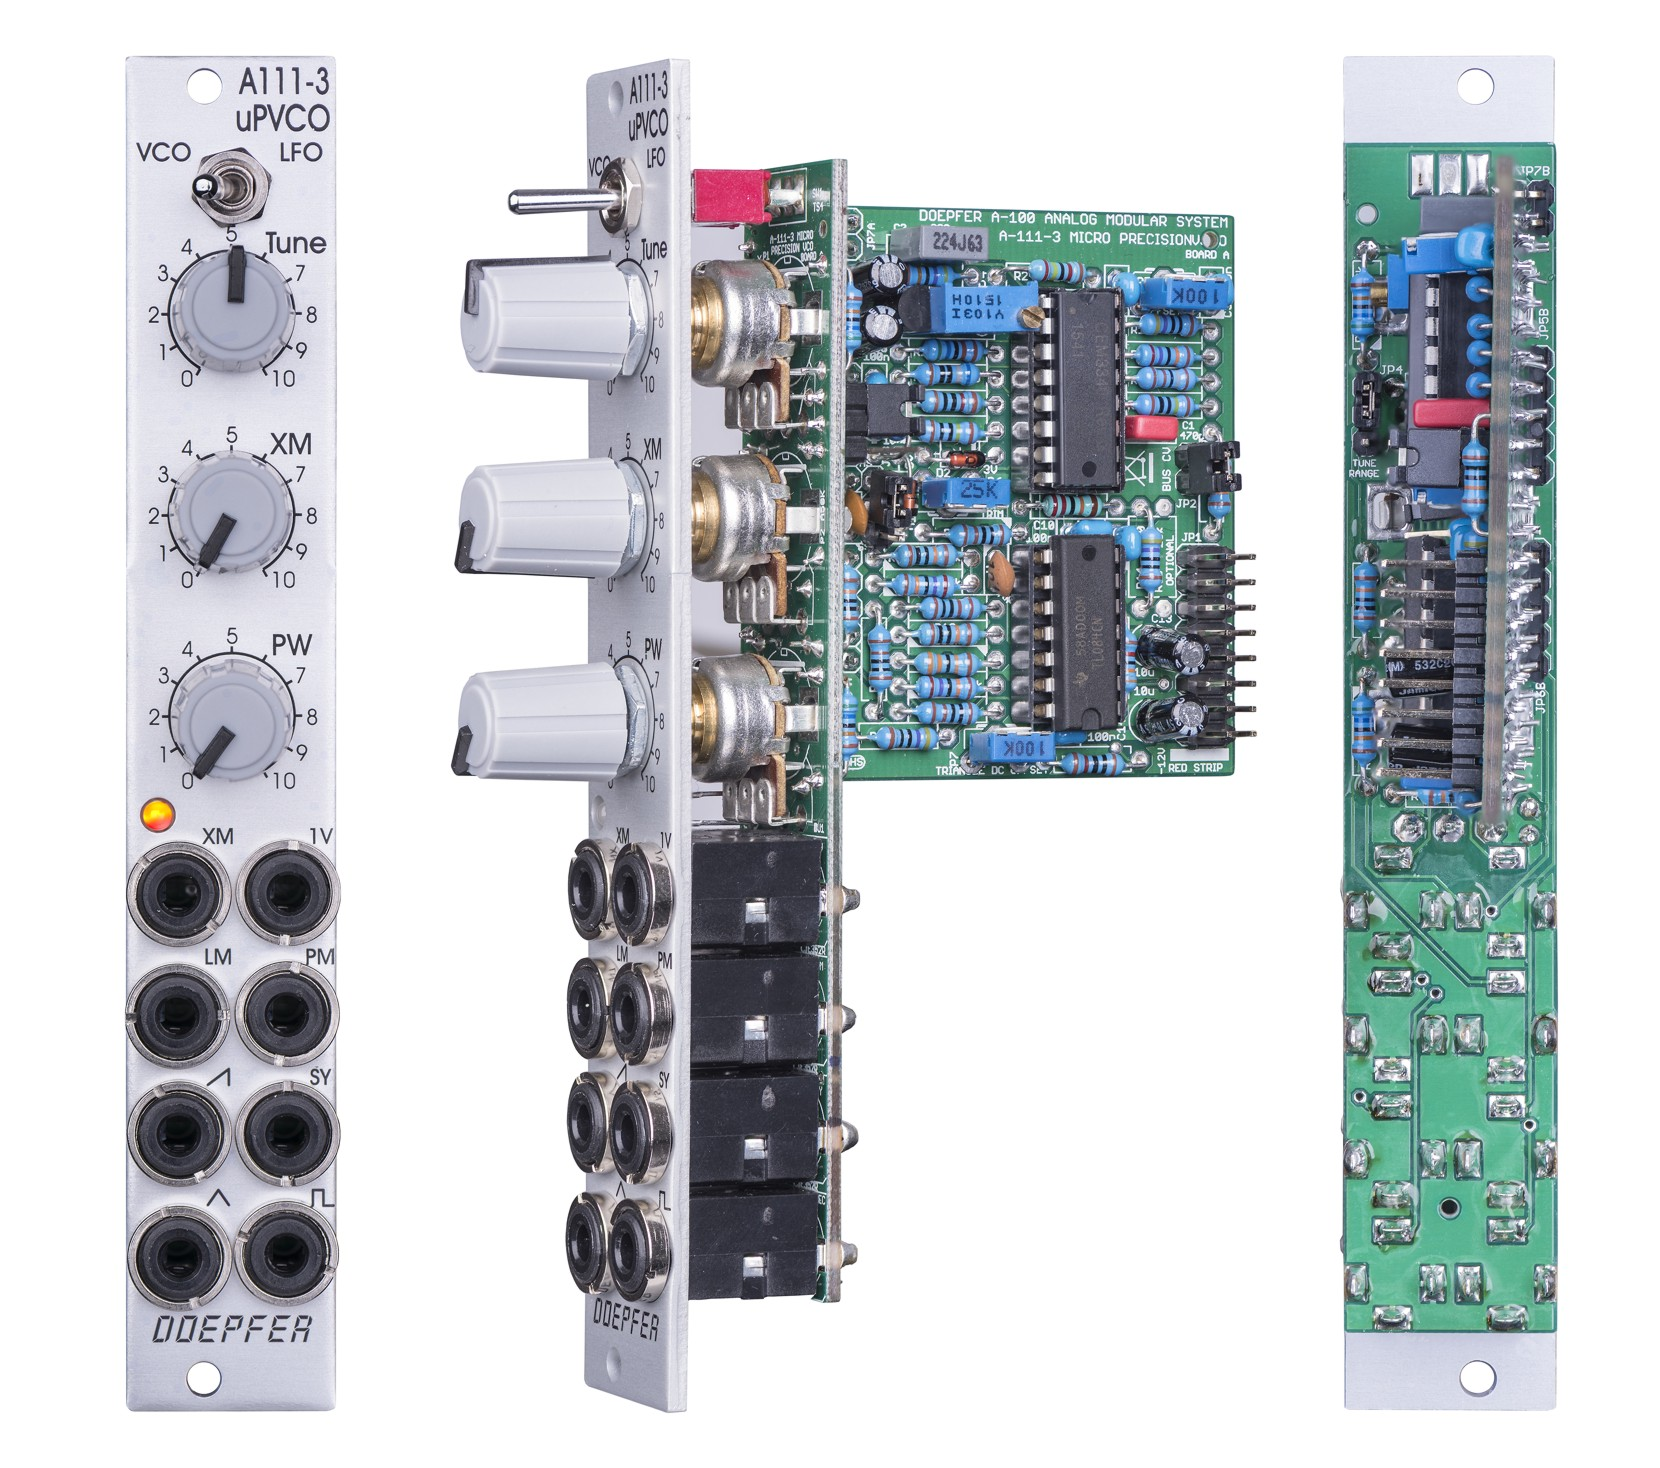 A 111 3 Micro Precision Vco Diagram Basiccircuit Statevariablelowpassfiltercircuitdiagram Click To Enlarge